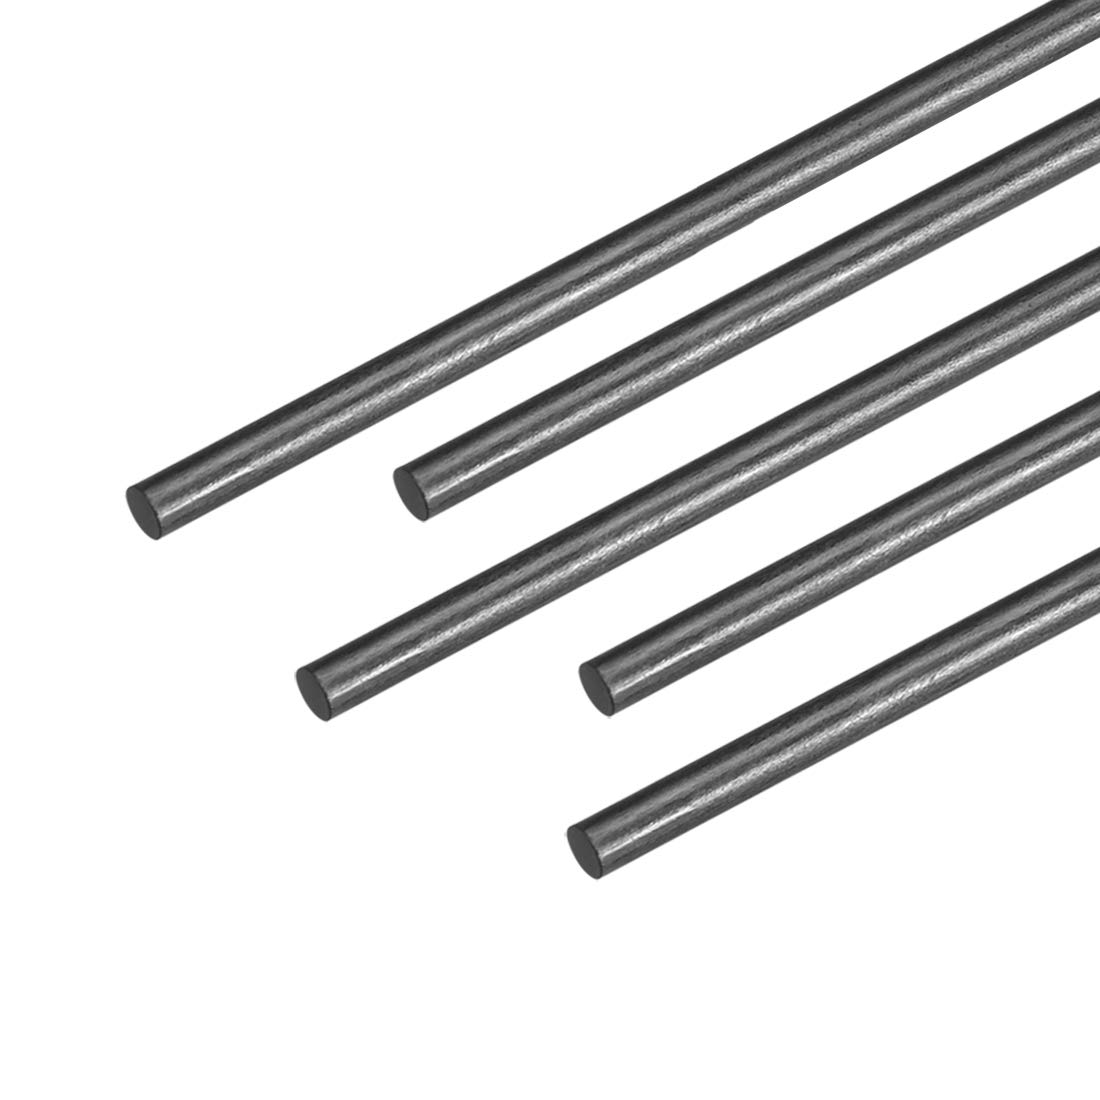 5pcs uxcell 2.5mm Carbon Fiber Bar for RC Airplane Matte Pole US 400mm 15.7 inch